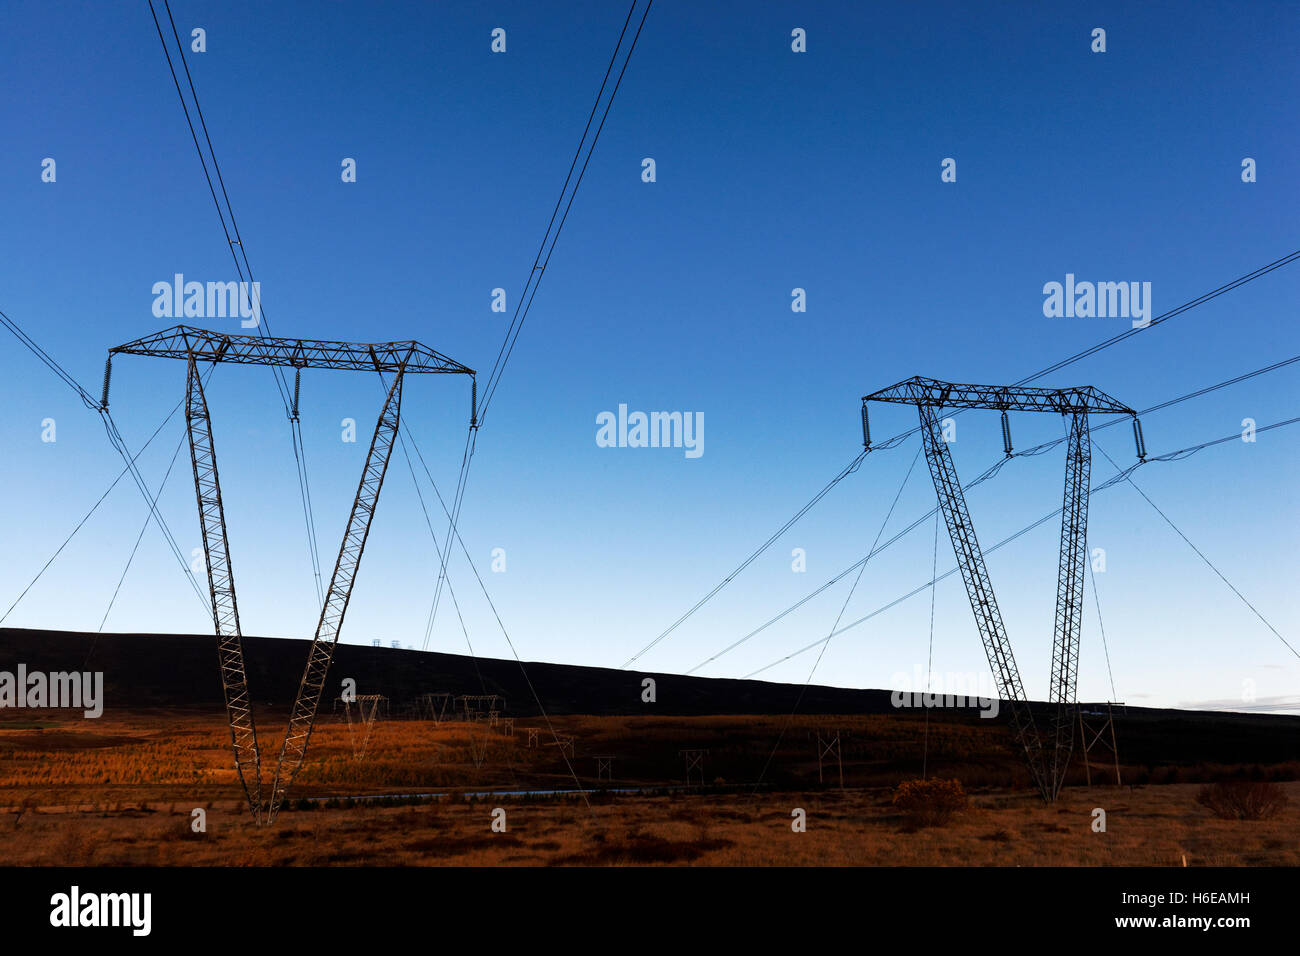 High tension power lines in Landscape, East Iceland, North Atlantic, Europe - Stock Image